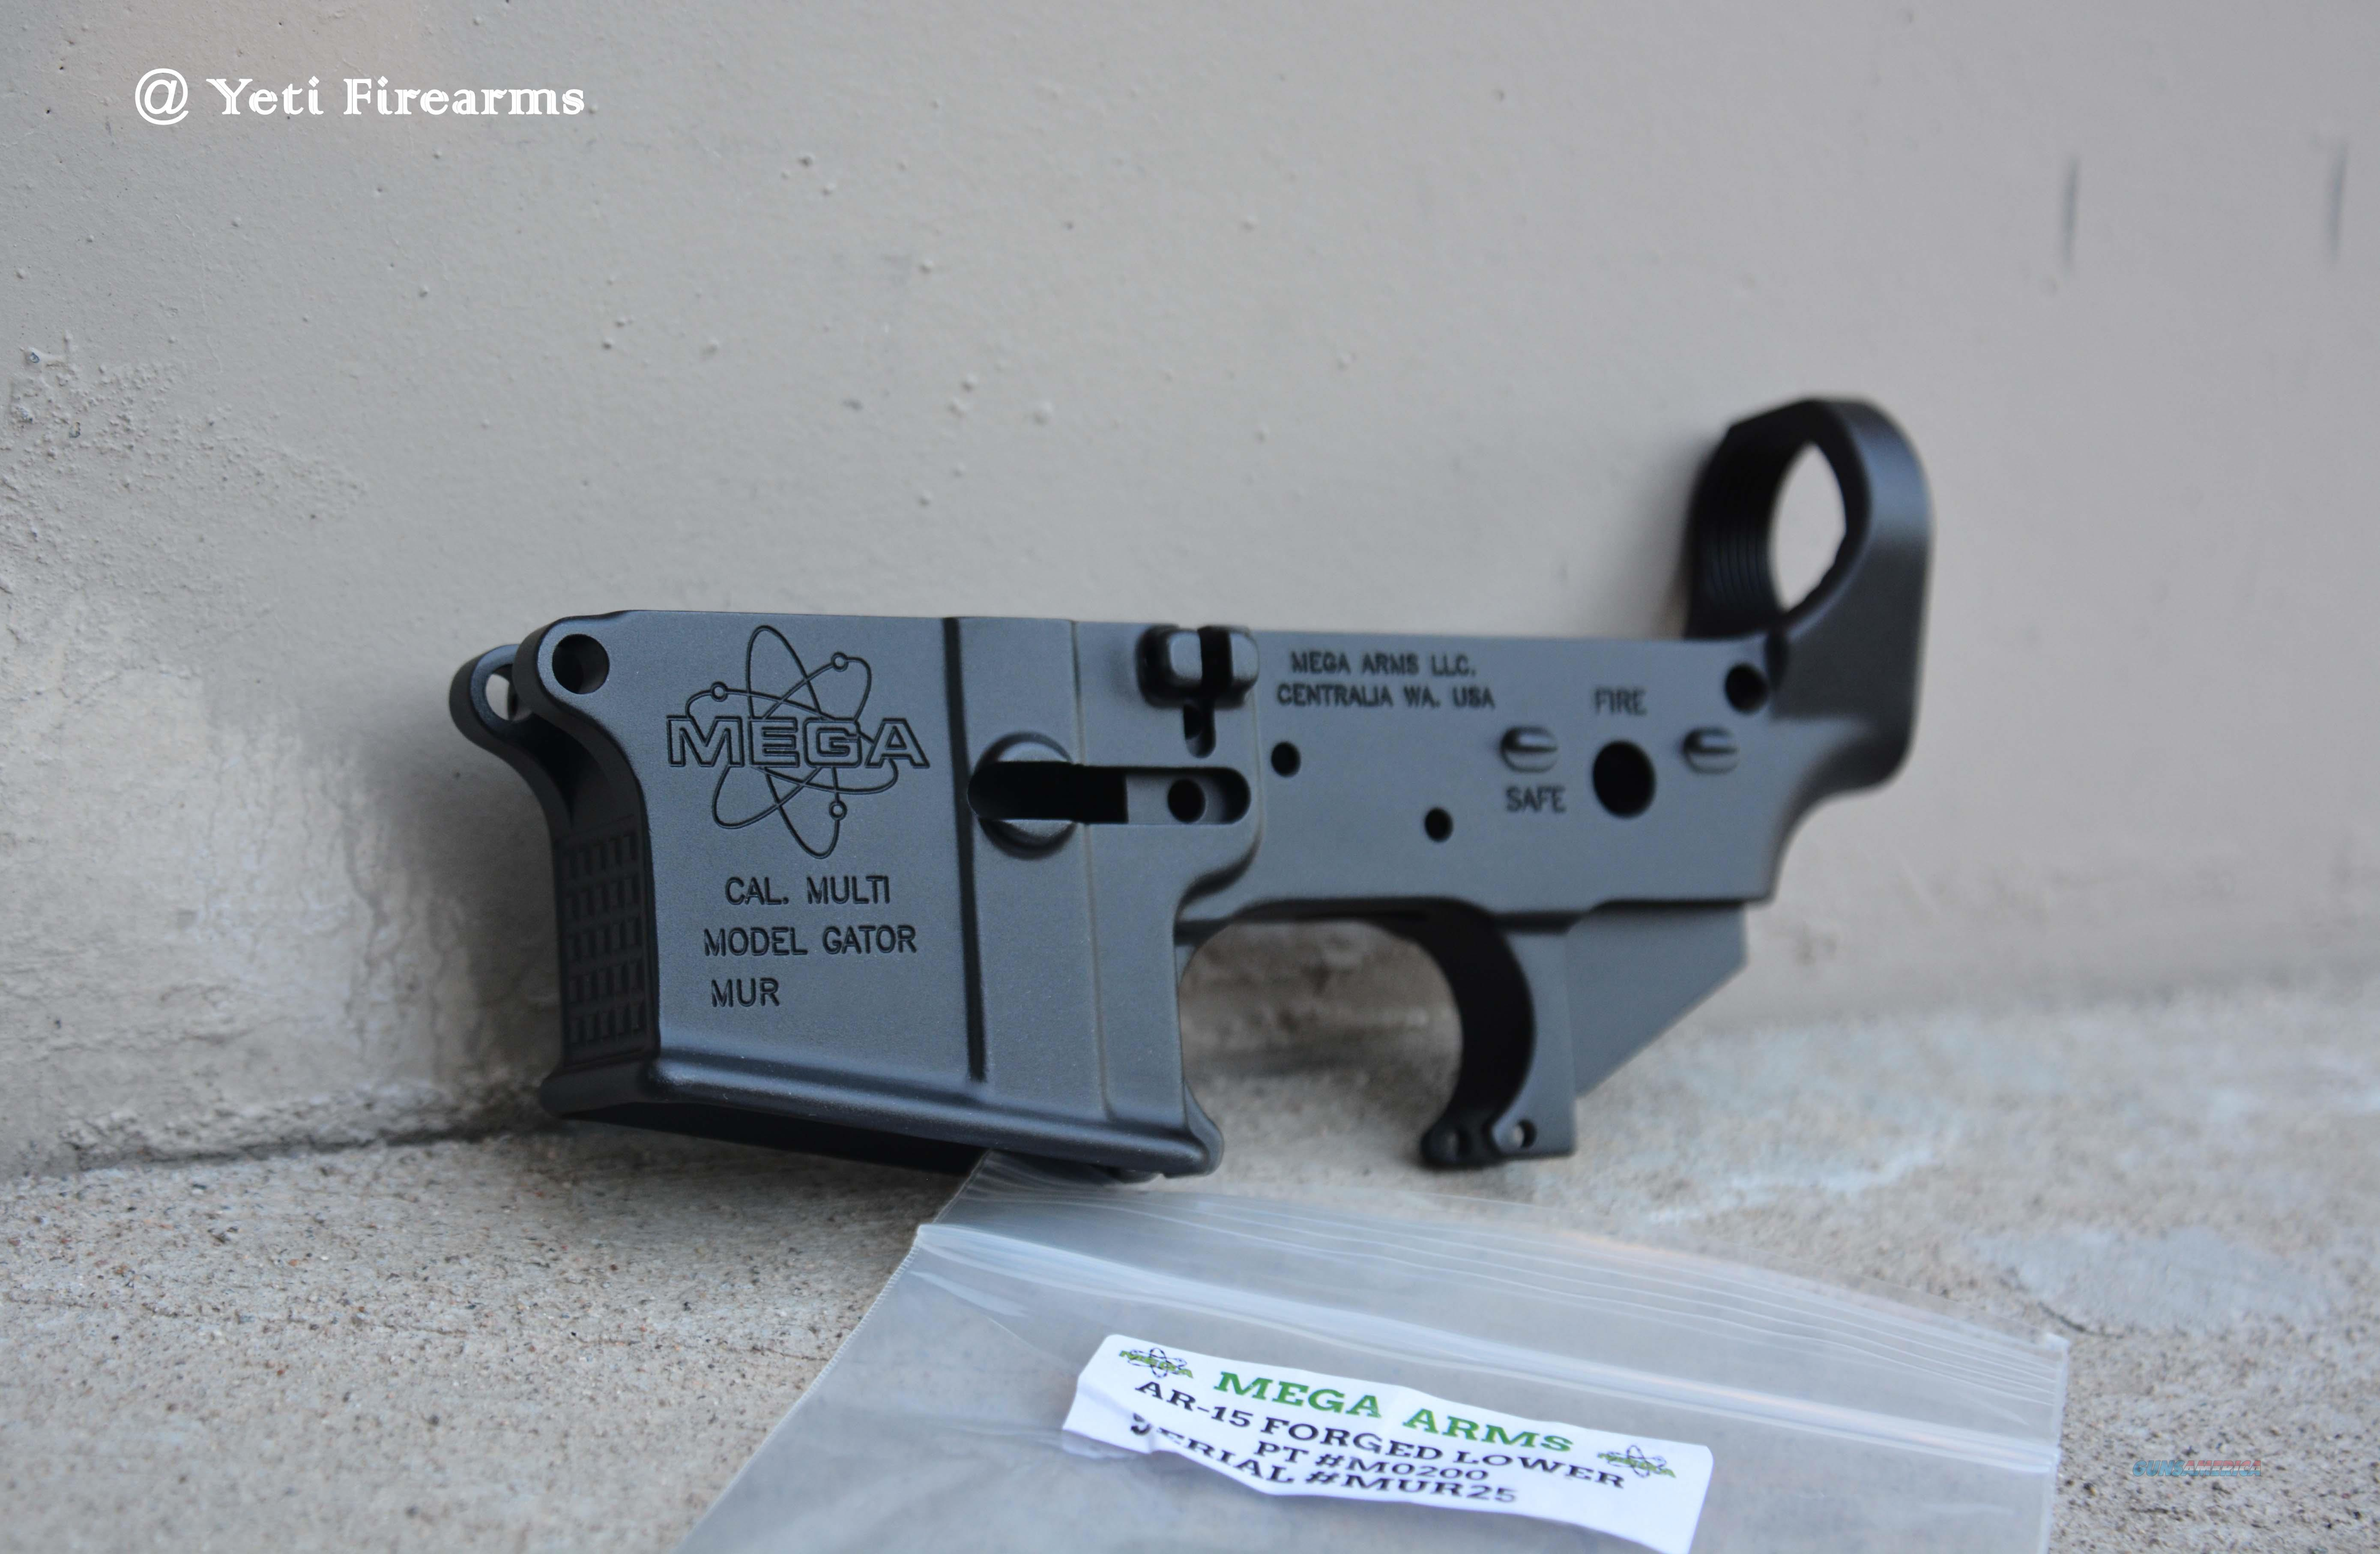 Mega Arms Forged AR-15 Lower Stripped M0200 Gator  Guns > Rifles > AR-15 Rifles - Small Manufacturers > Lower Only